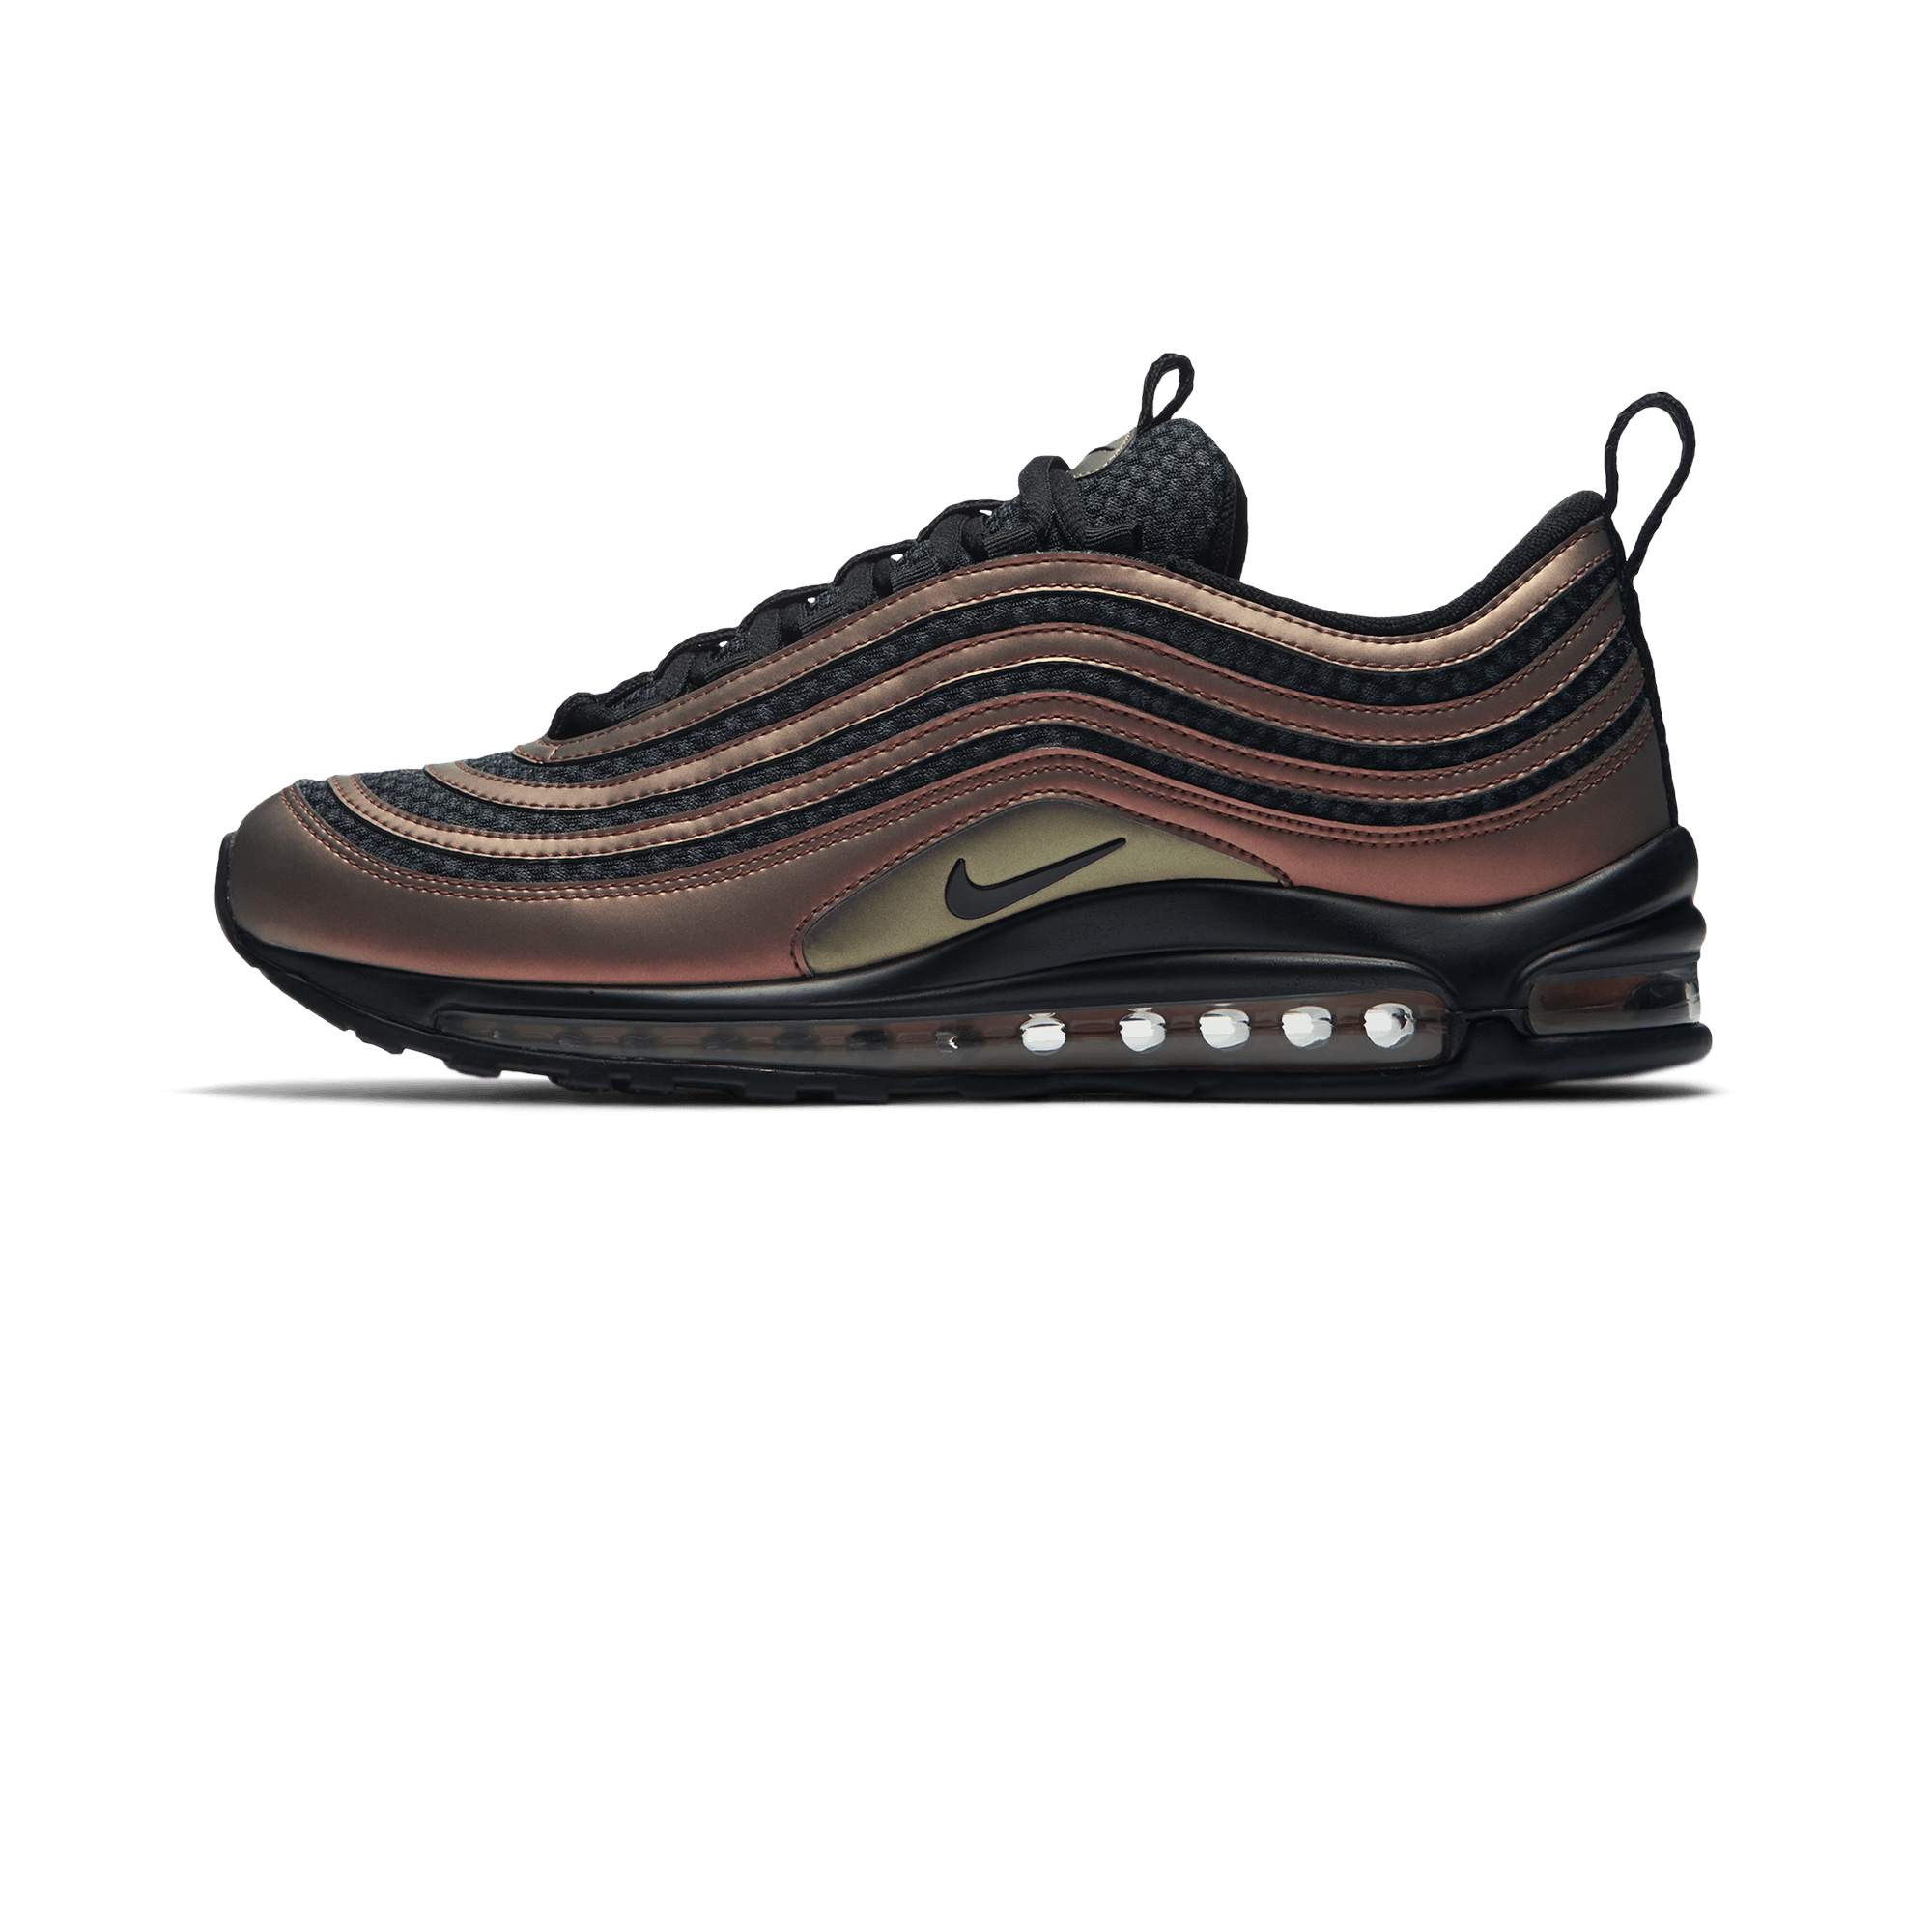 nike air max ultra uomo 97